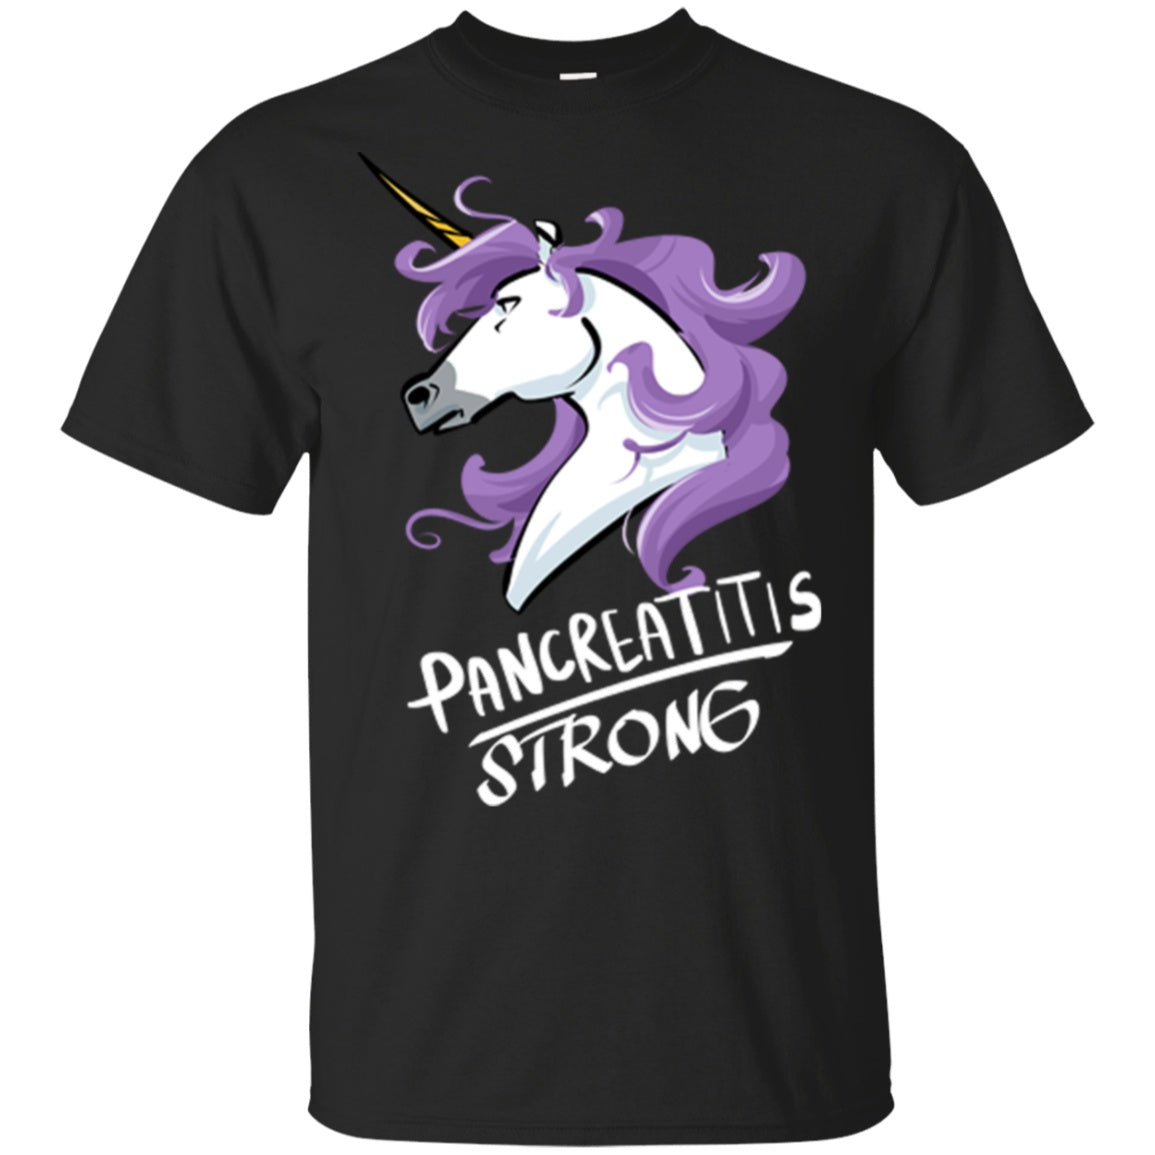 Pancreatitis Strong Unicorn Cotton Unisex T-Shirt - The Unchargeables